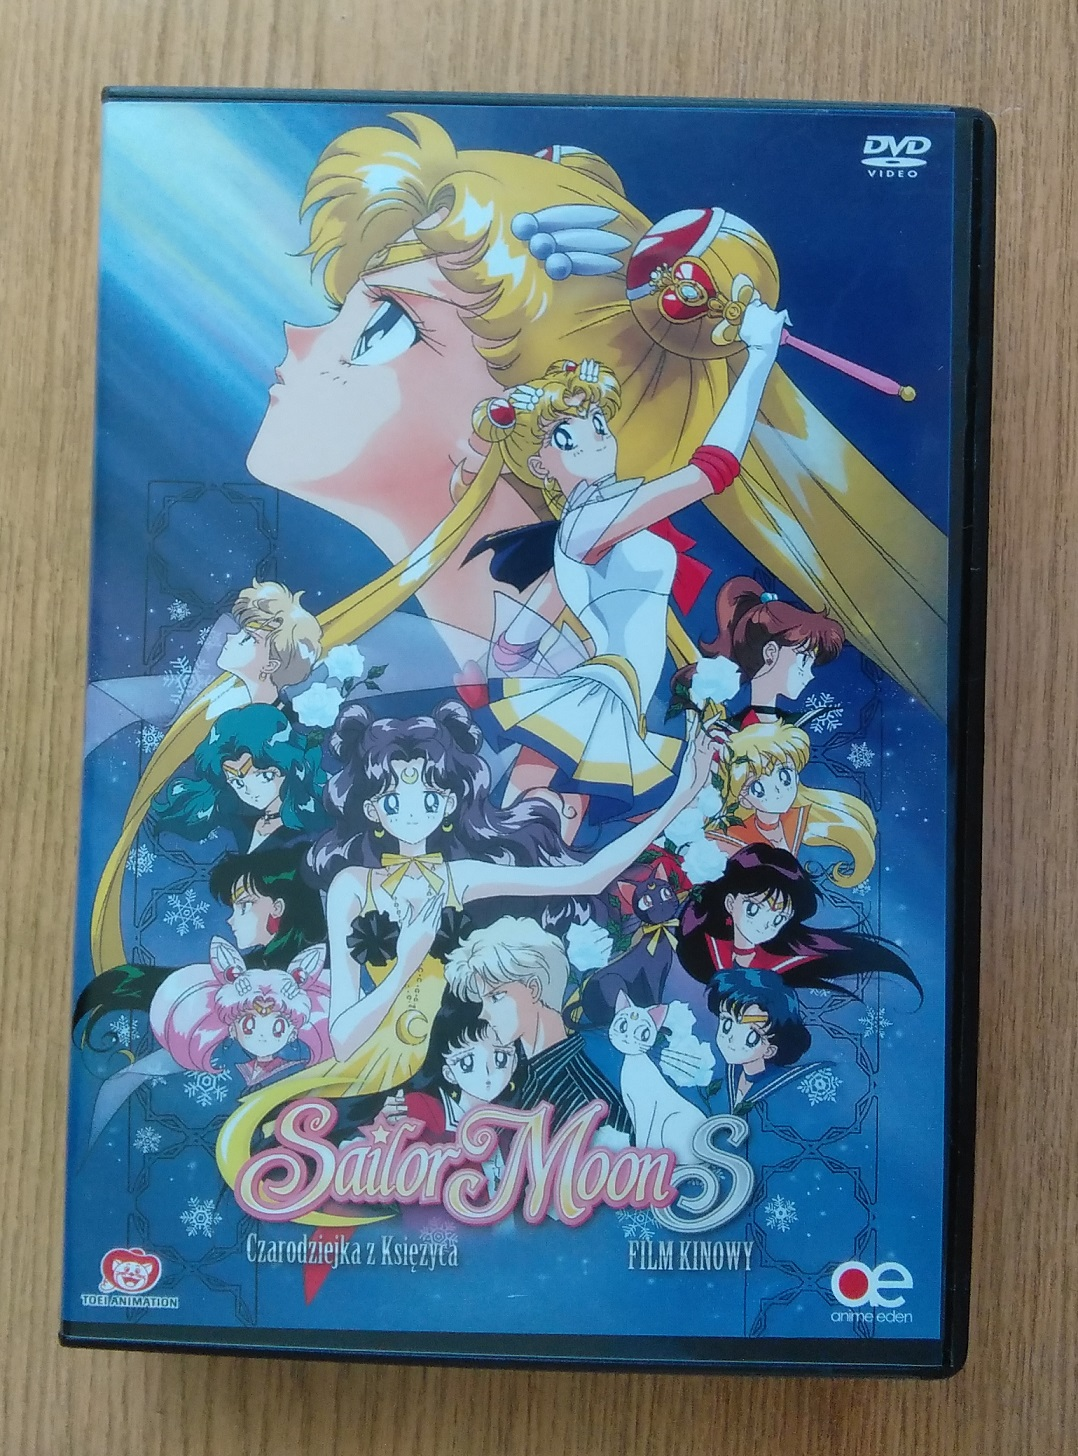 Sailor Moon S film kinowy.jpg